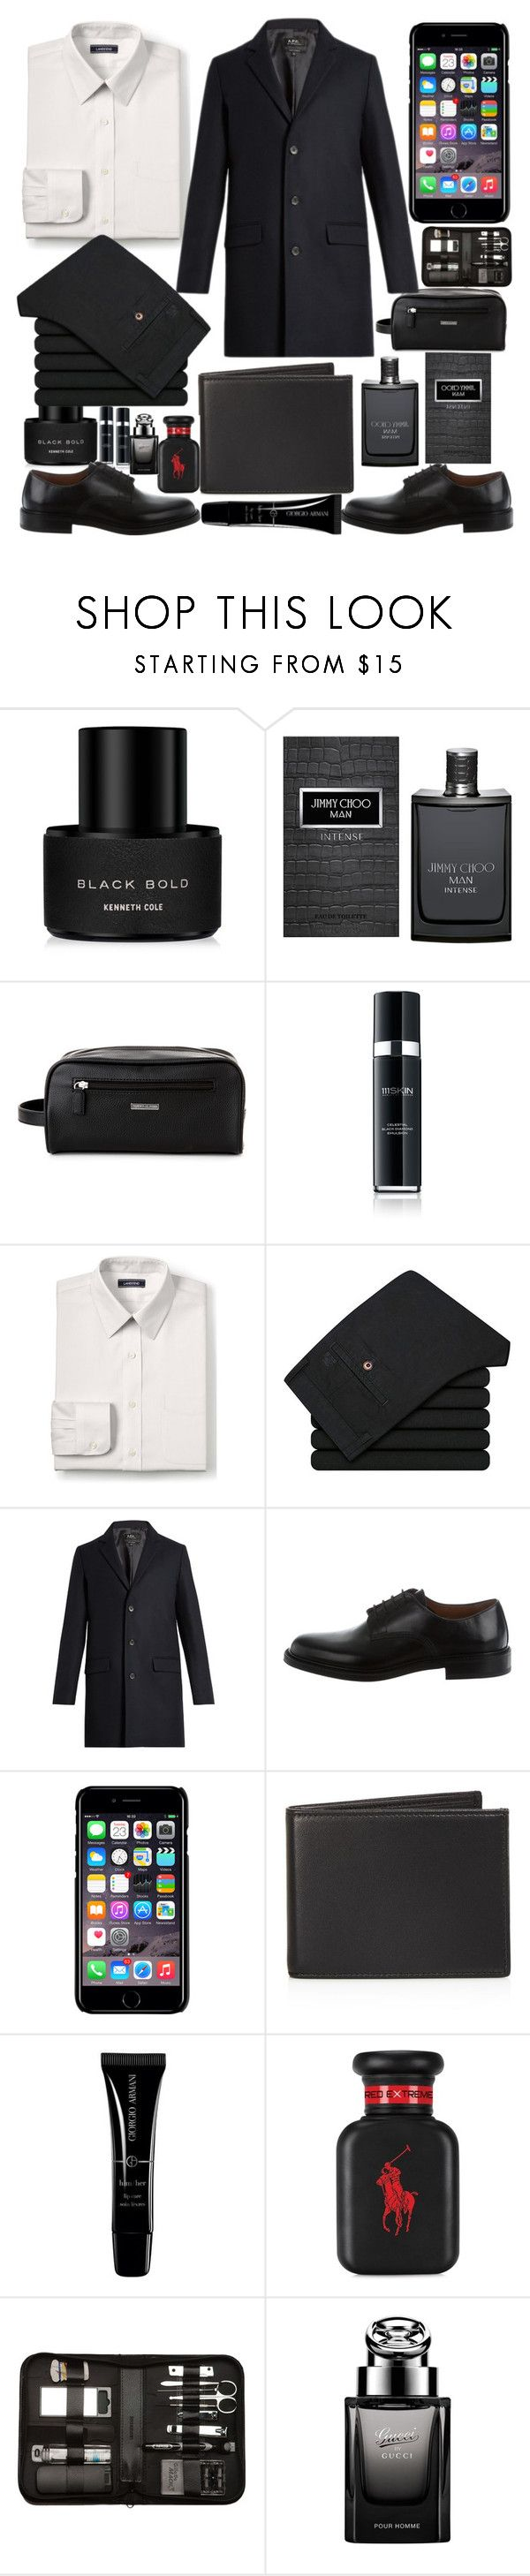 """Man's style"" by faesadanparkaia ❤ liked on Polyvore featuring Kenneth Cole, Jimmy Choo, Tommy Hilfiger, 111Skin, Lands' End, A.P.C., Givenchy, Off-White, The Men's Store and Armani Beauty"